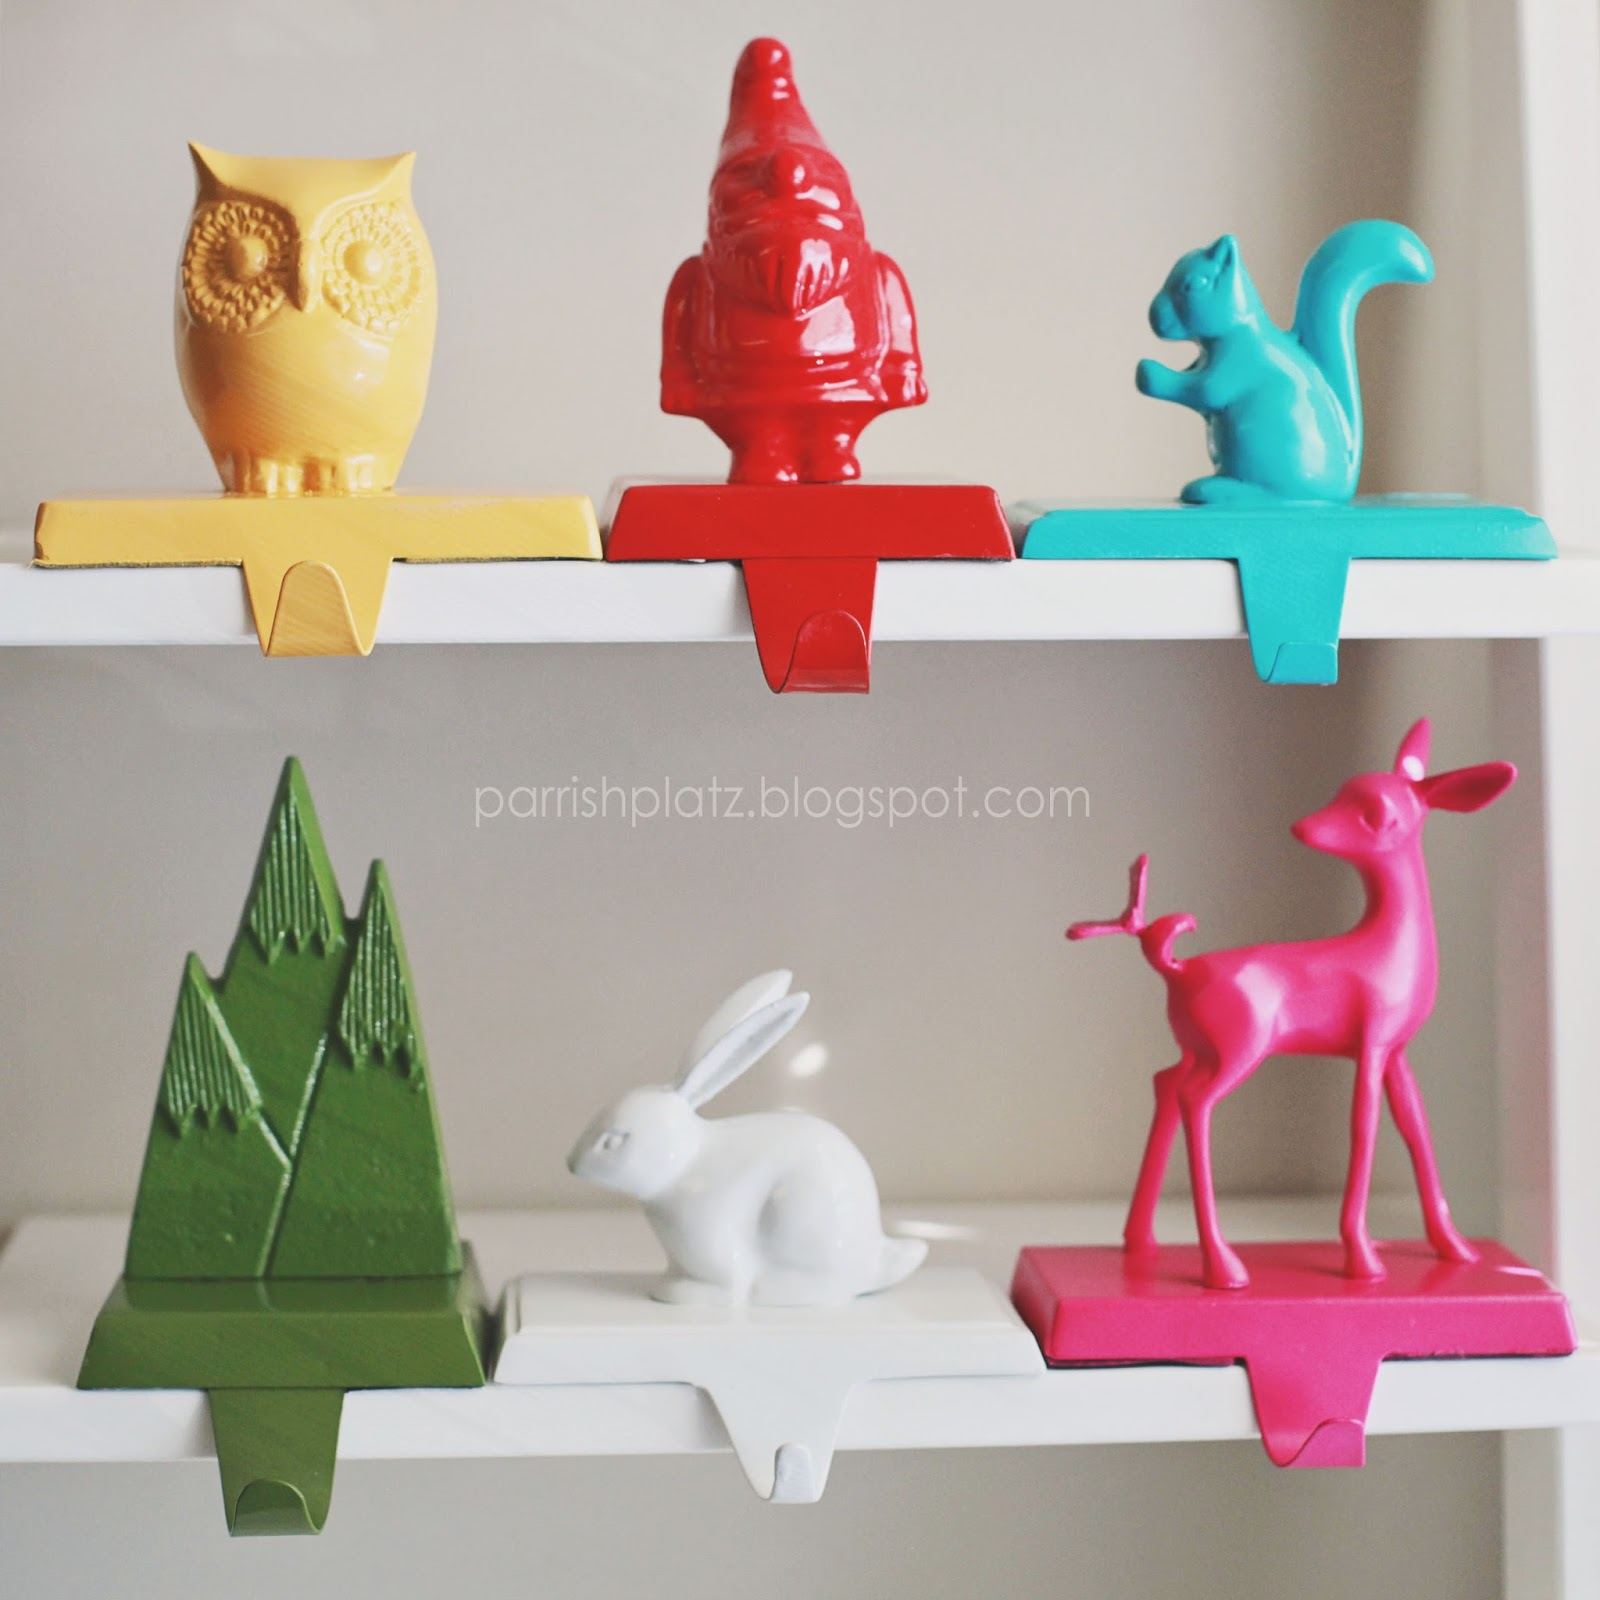 Parrish Platz Diy Woodland Stocking Hangers